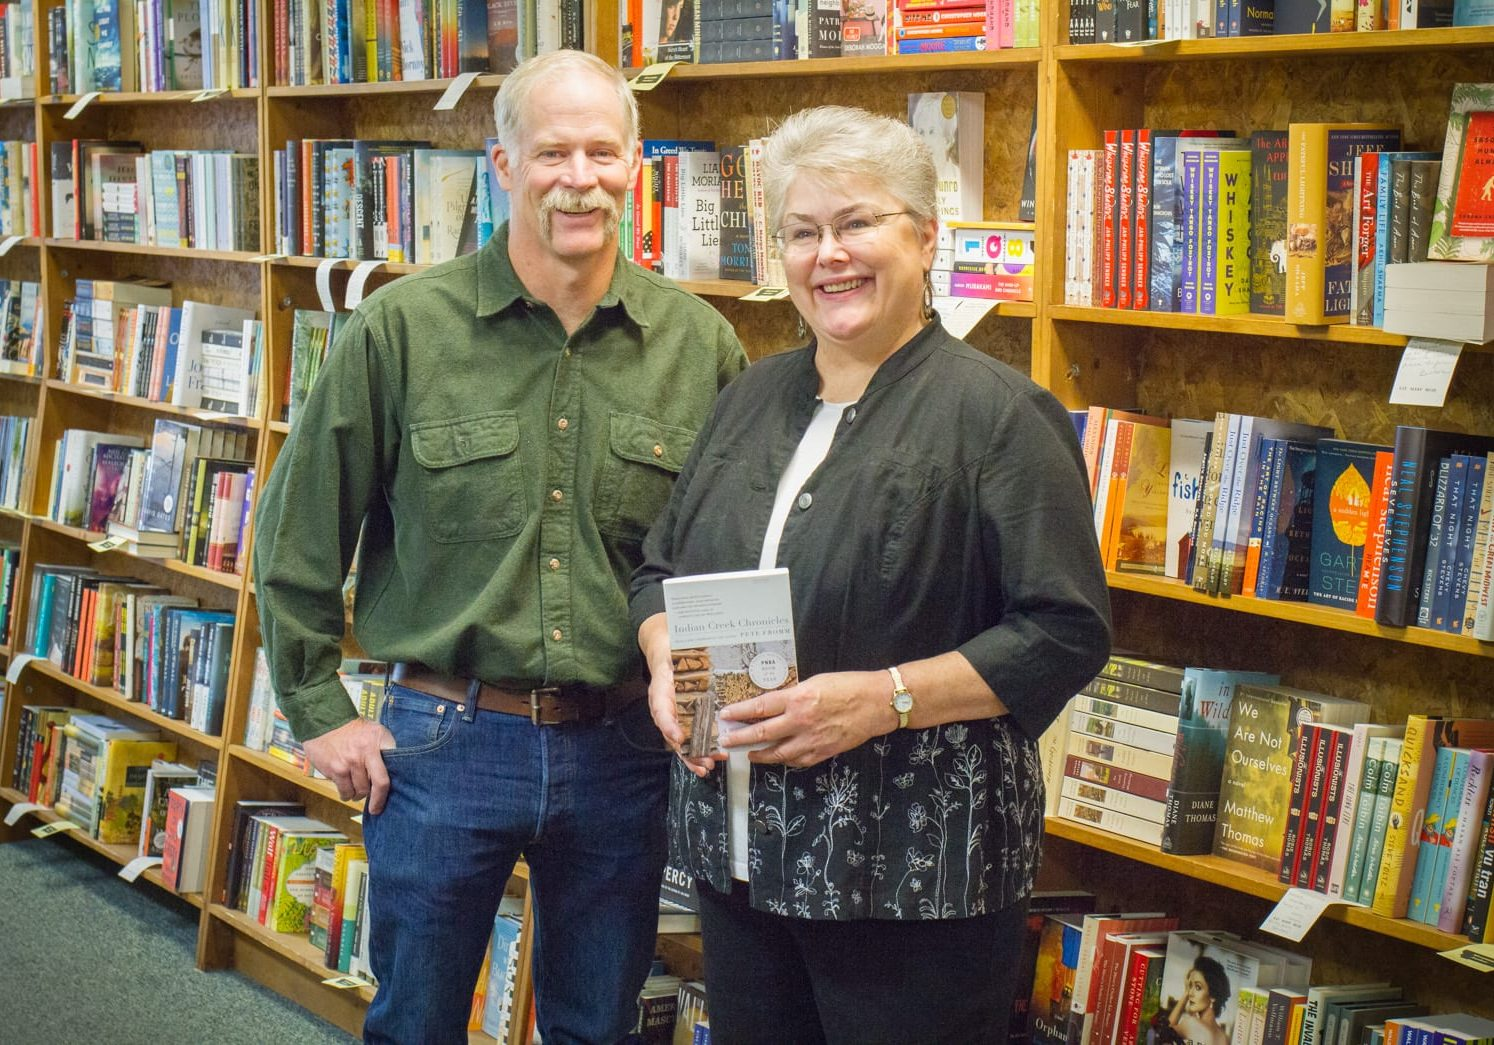 Author Pete Fromm And Judy Blunt